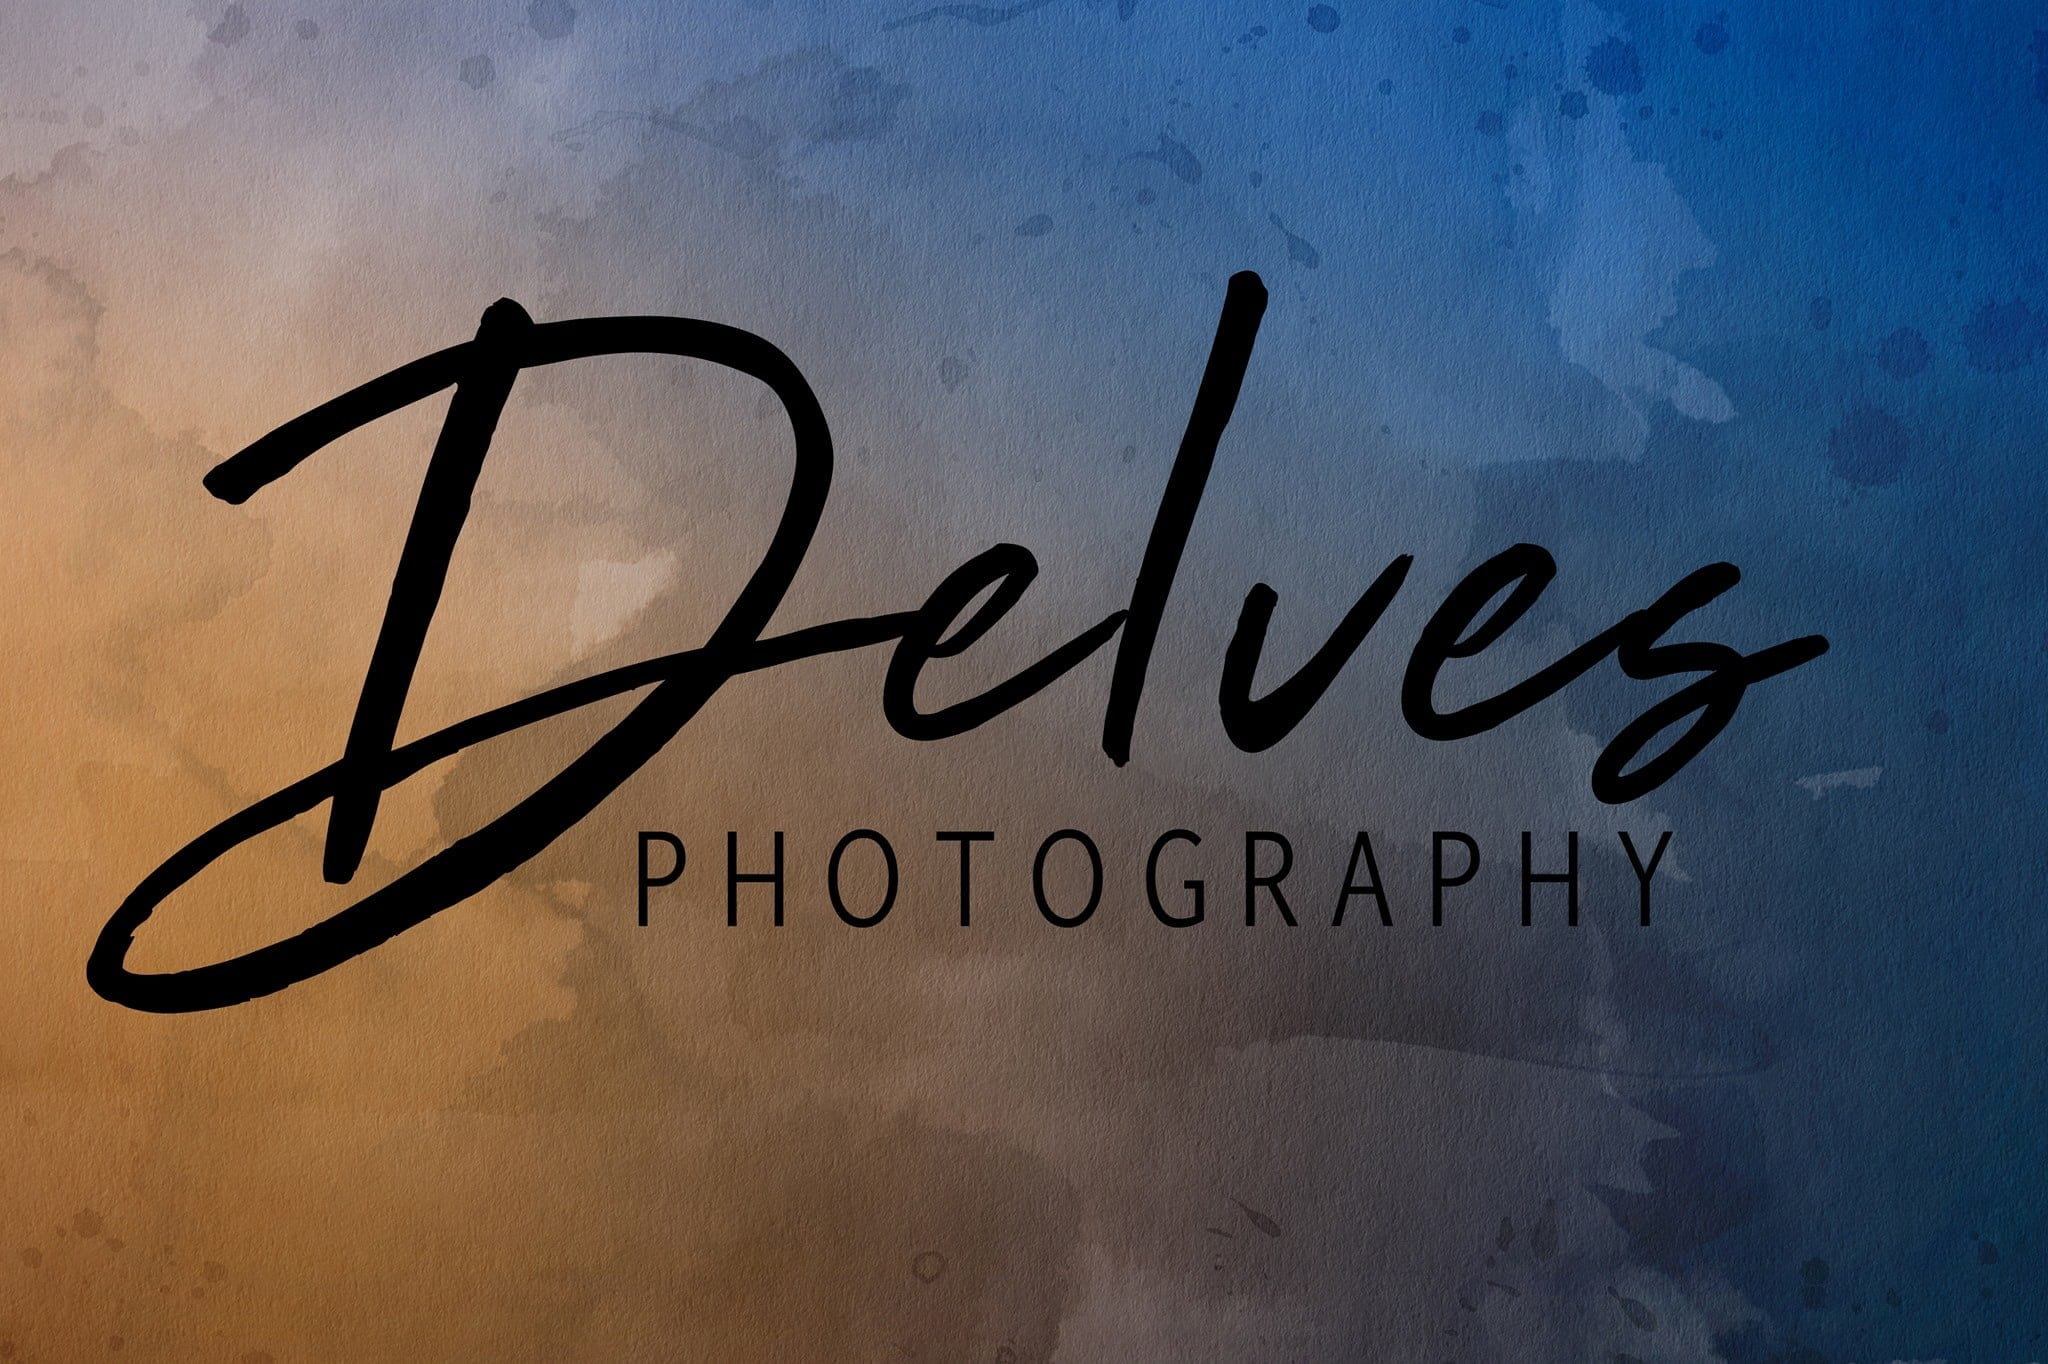 Delves Photography